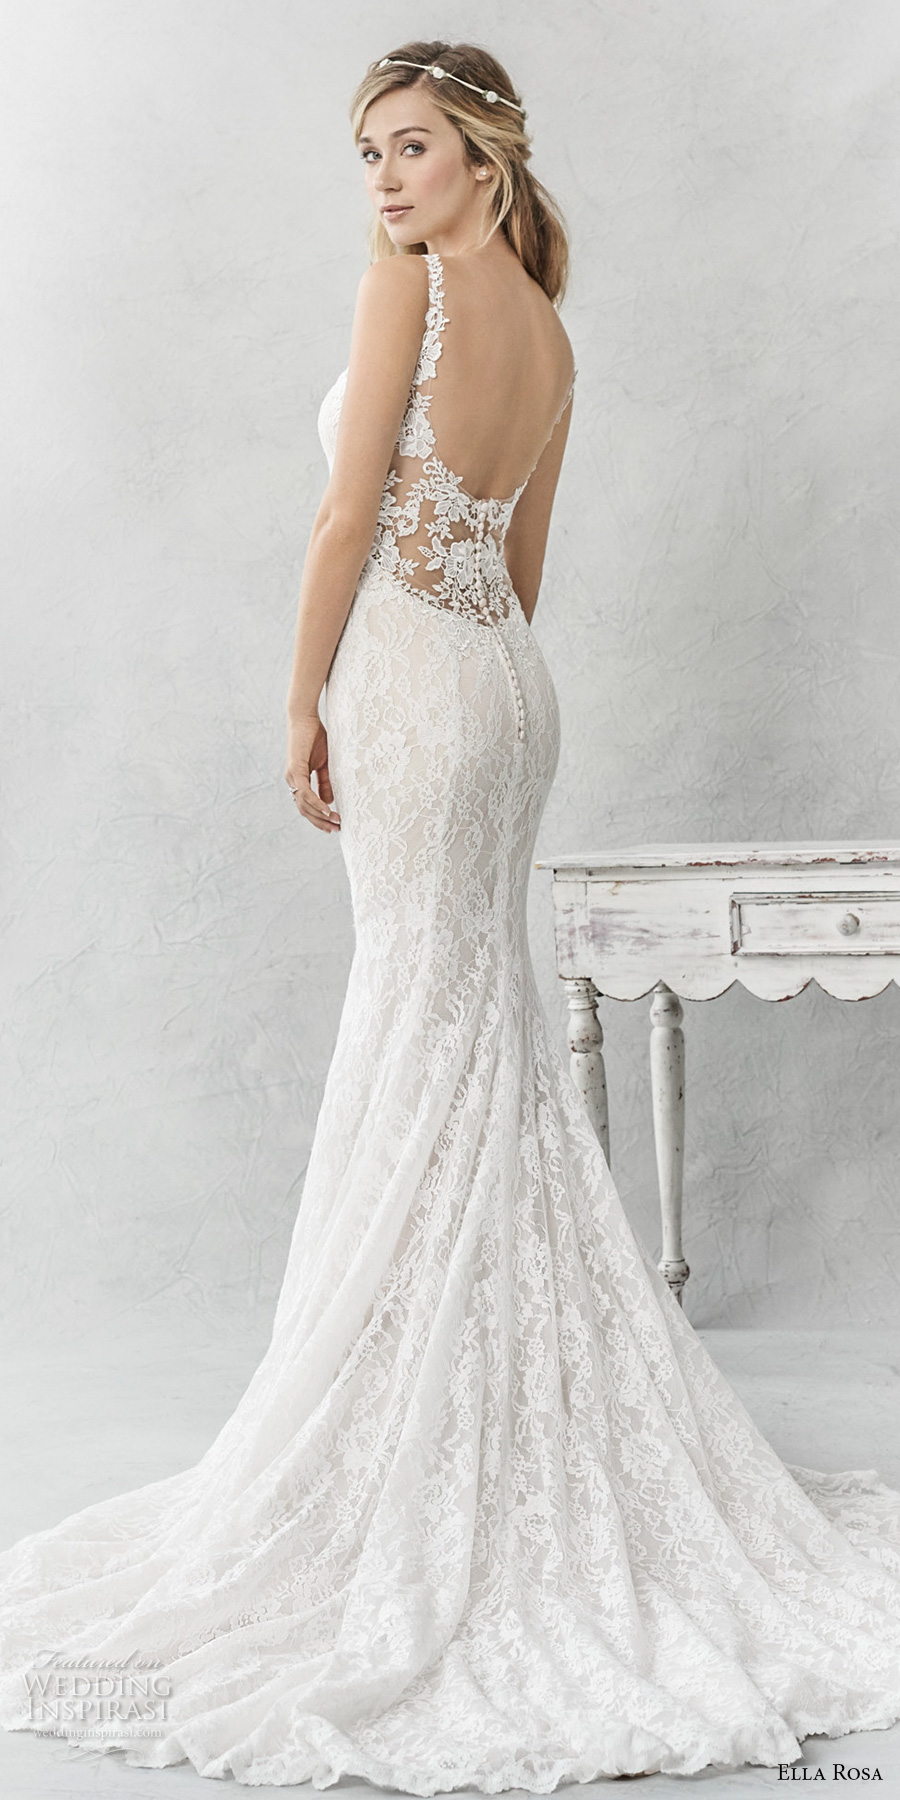 ella rosa spring 2017 bridal sleeveless thin strap sweetheart neckline full embellishment elegant sheath fit flare wedding dress open back chapel train (365) bv